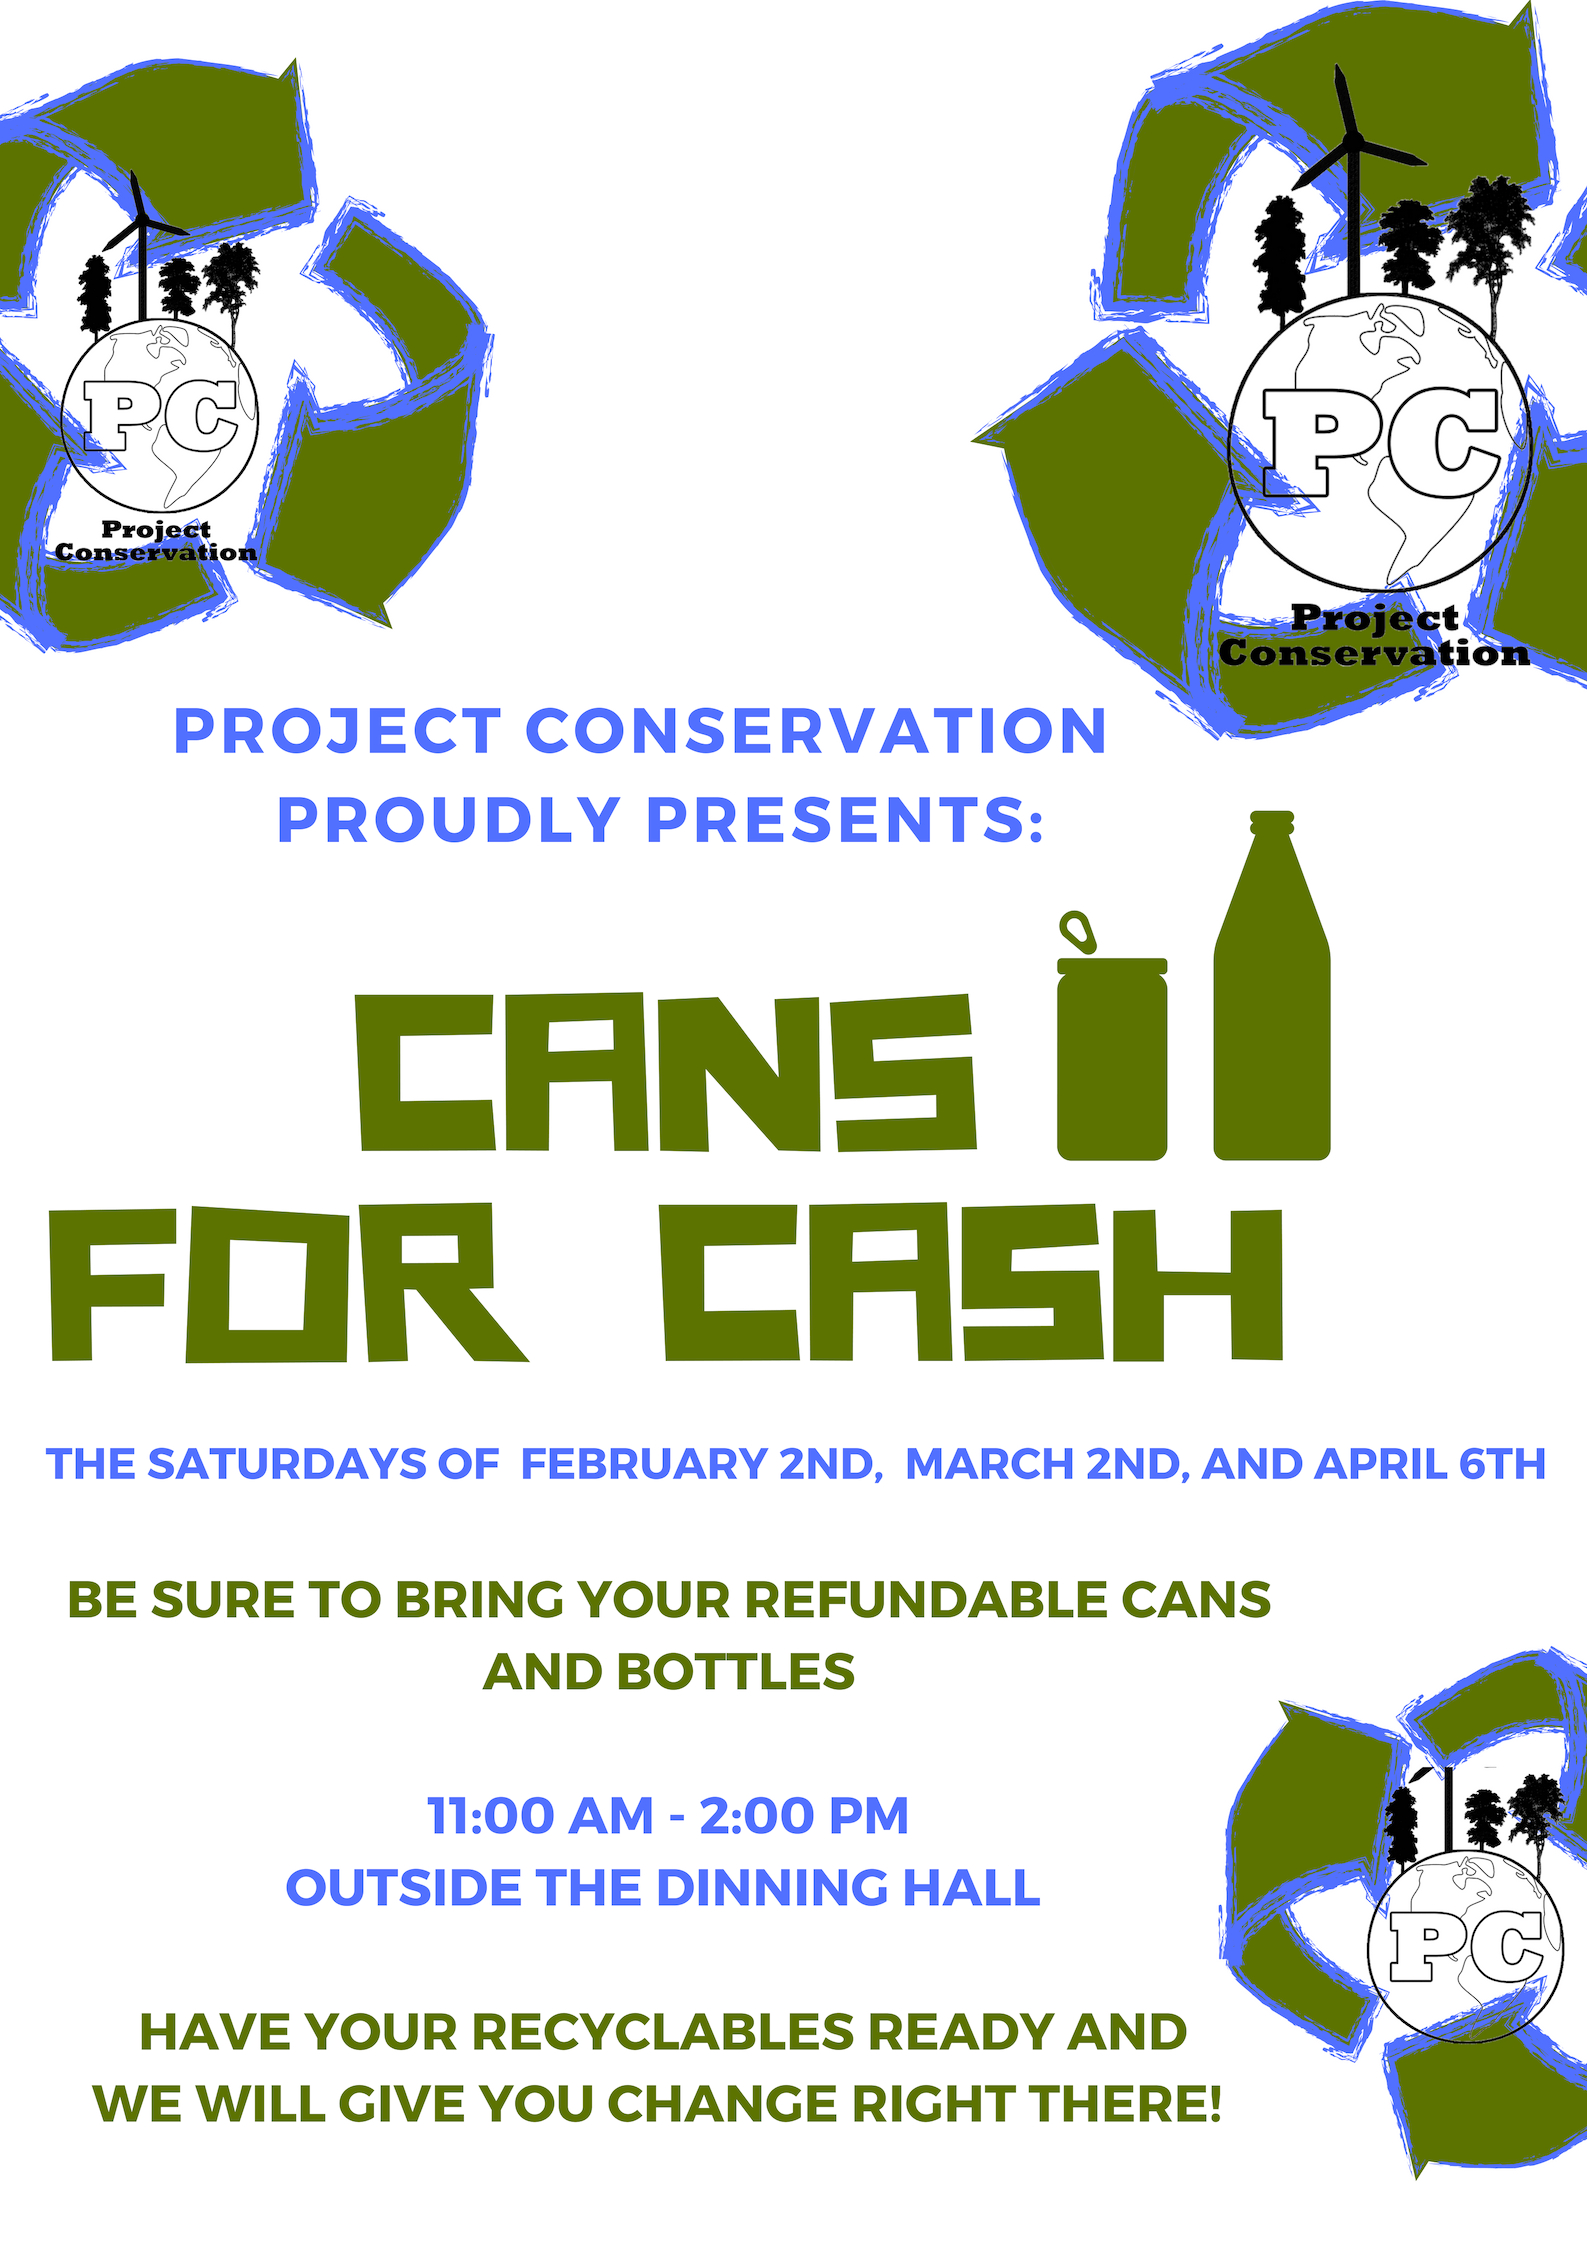 PC Cans4Cash Recycling Poster #2.jpg